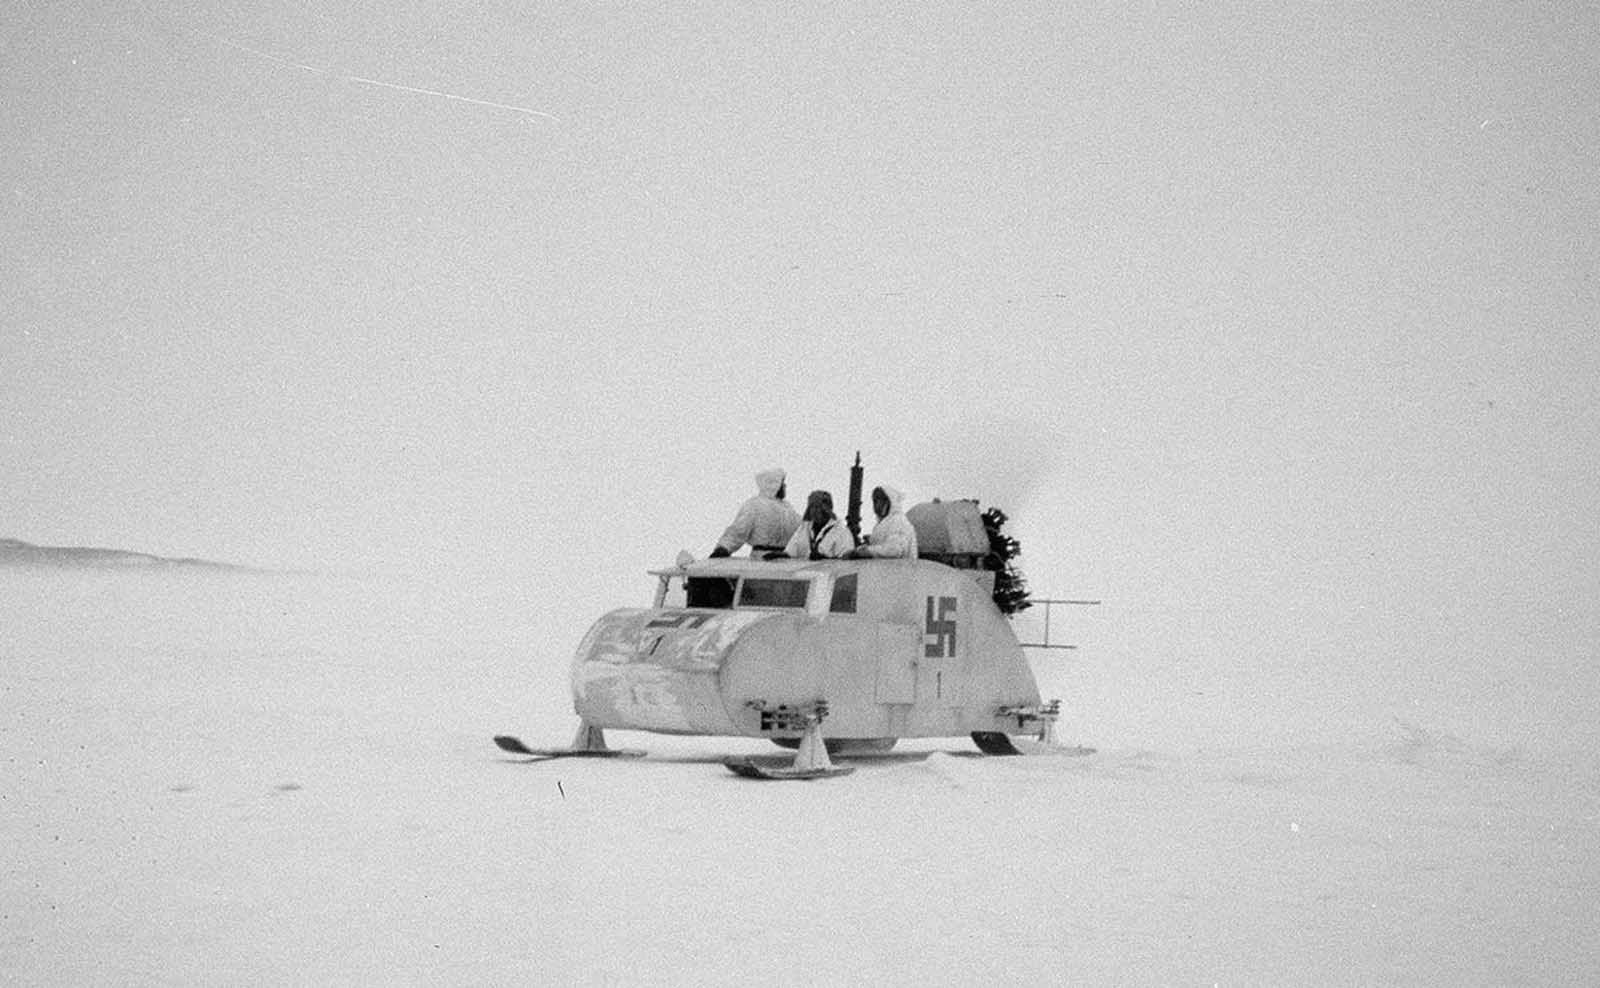 Propeller-driven snowmobile near Haapasaari, Finland. The swastika was used as the official national marking of the Finnish Air Force and Tank Corps between 1918 and 1945.